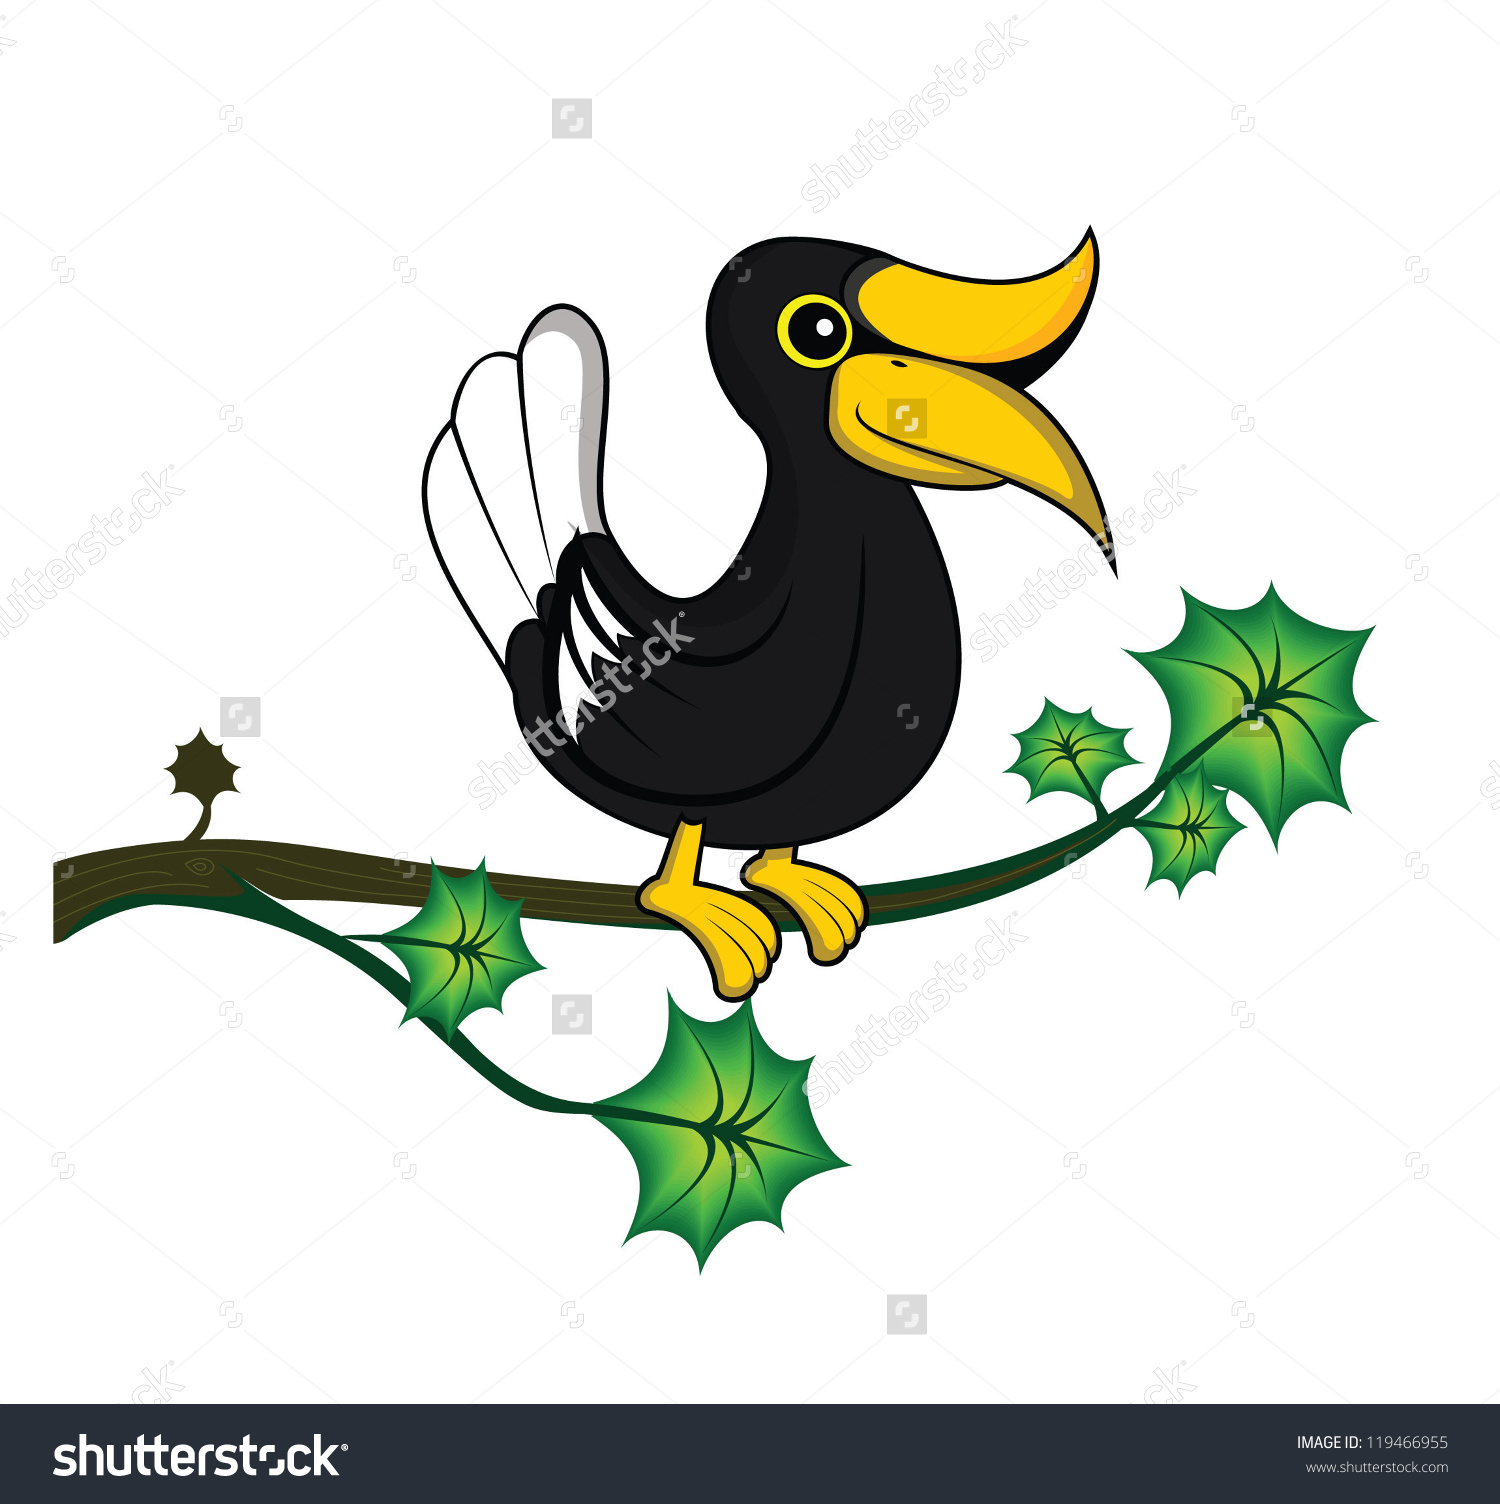 Hornbill clipart #4, Download drawings